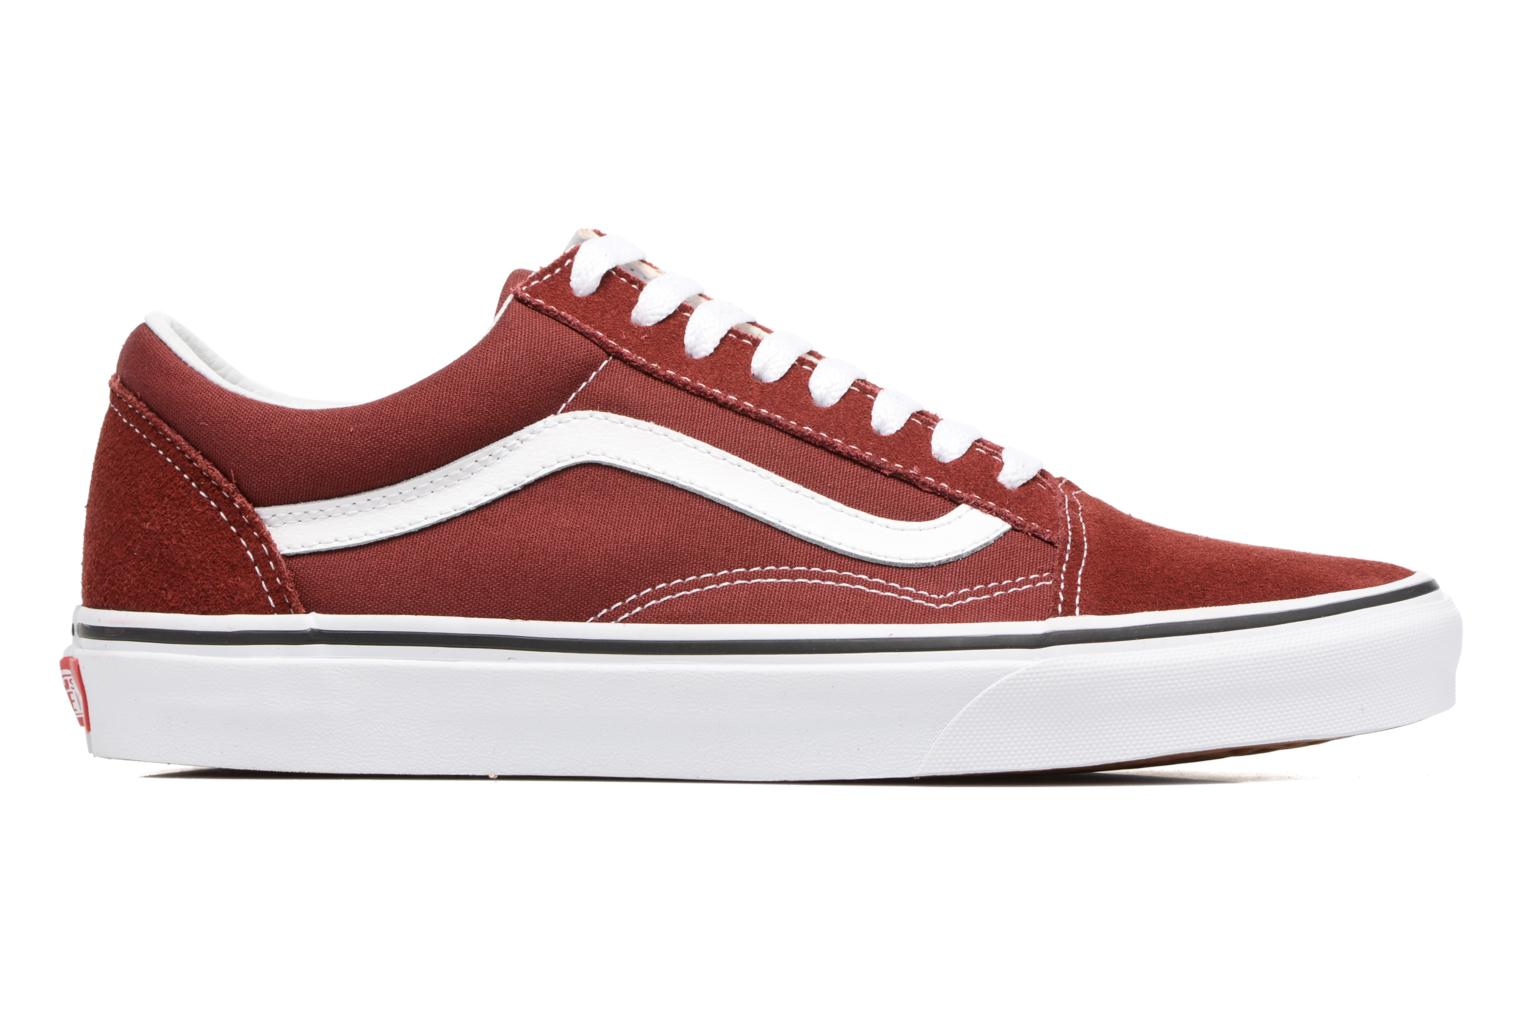 Old Skool Madder Brown/True White